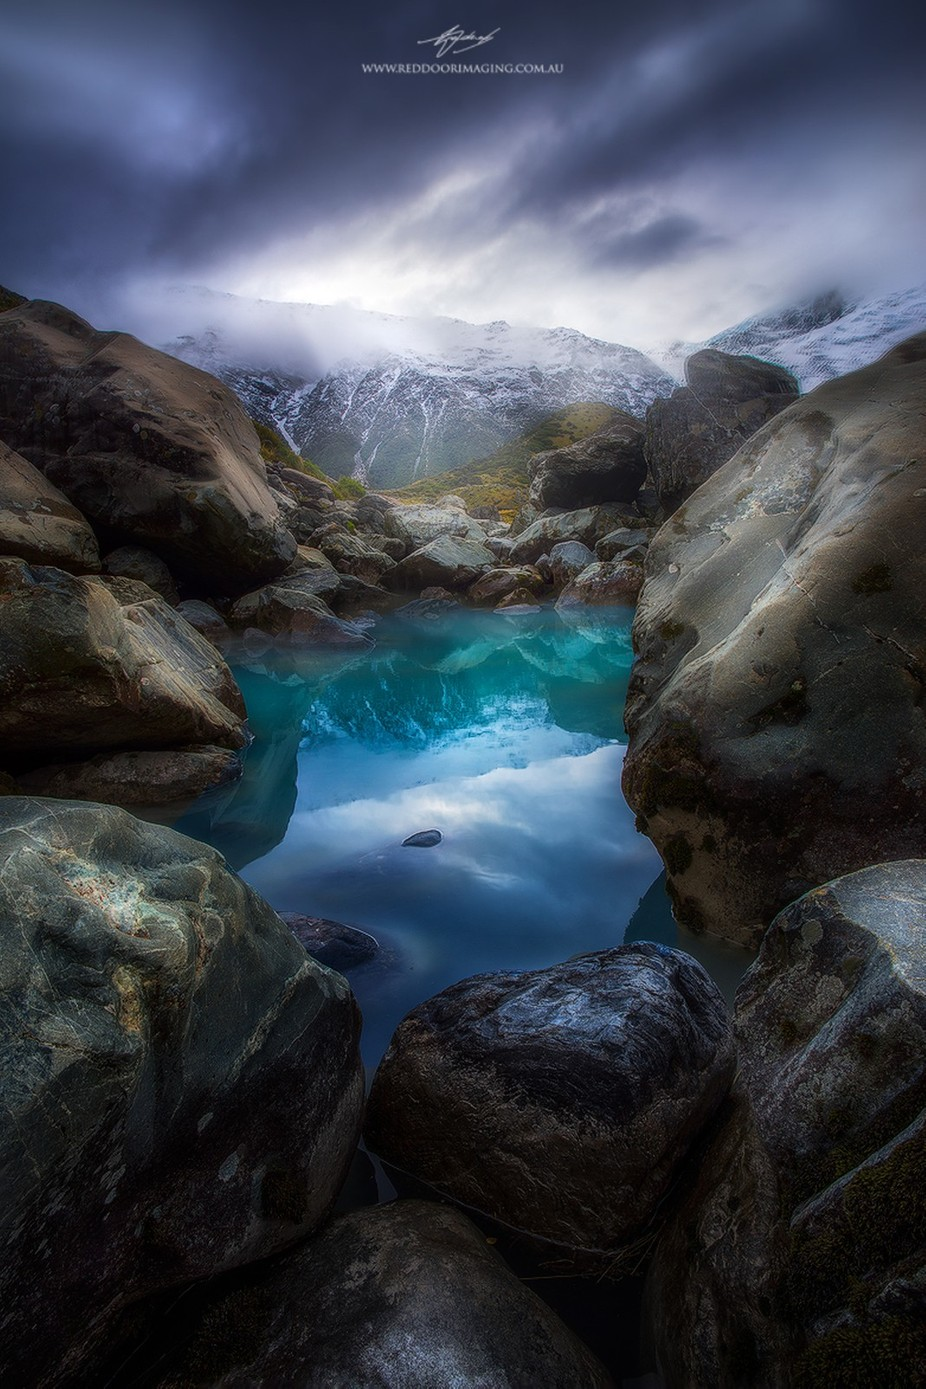 reflecing-on-kea by rodneytrenchard - Image Of The Month Photo Contest Vol 22